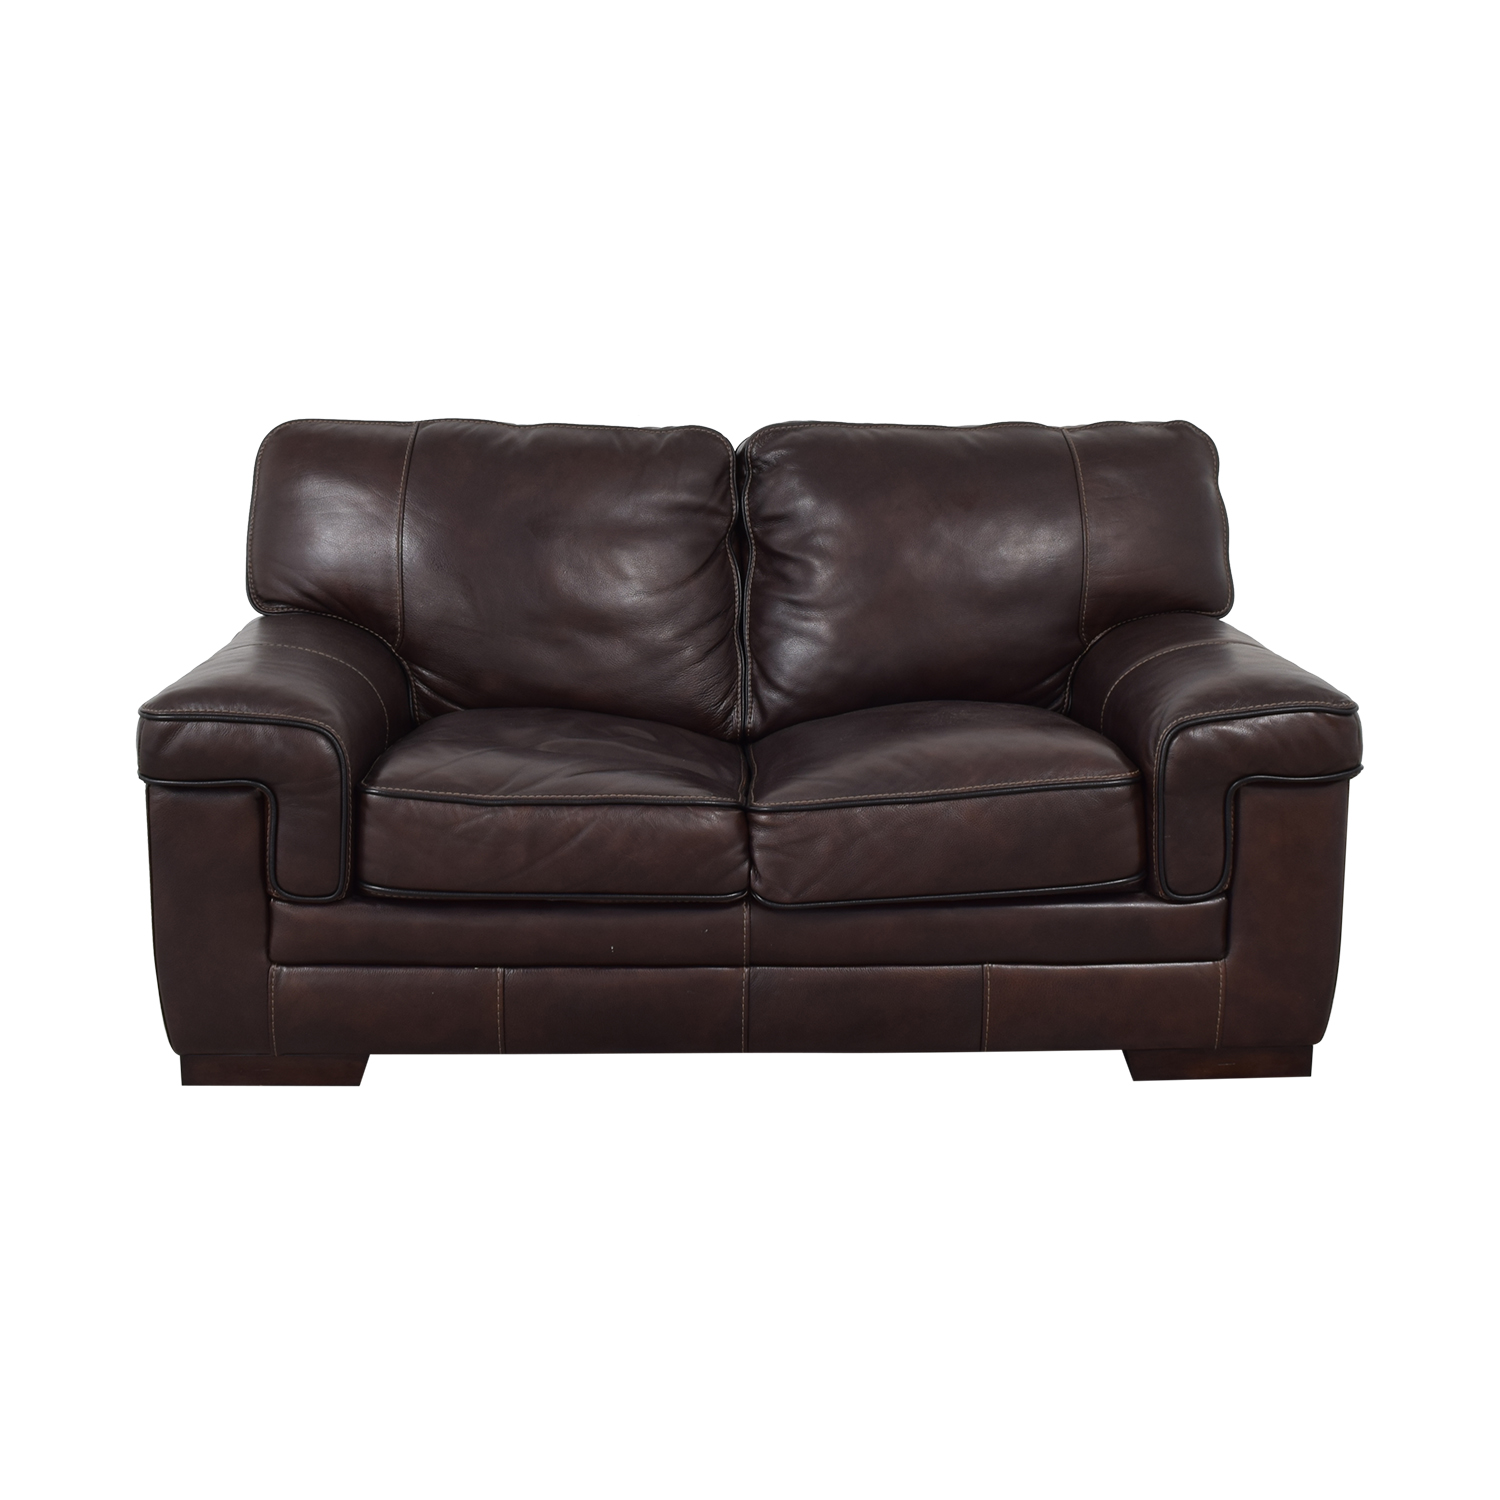 Simon Li Simon Li Stampede Coffee Brown Loveseat for sale